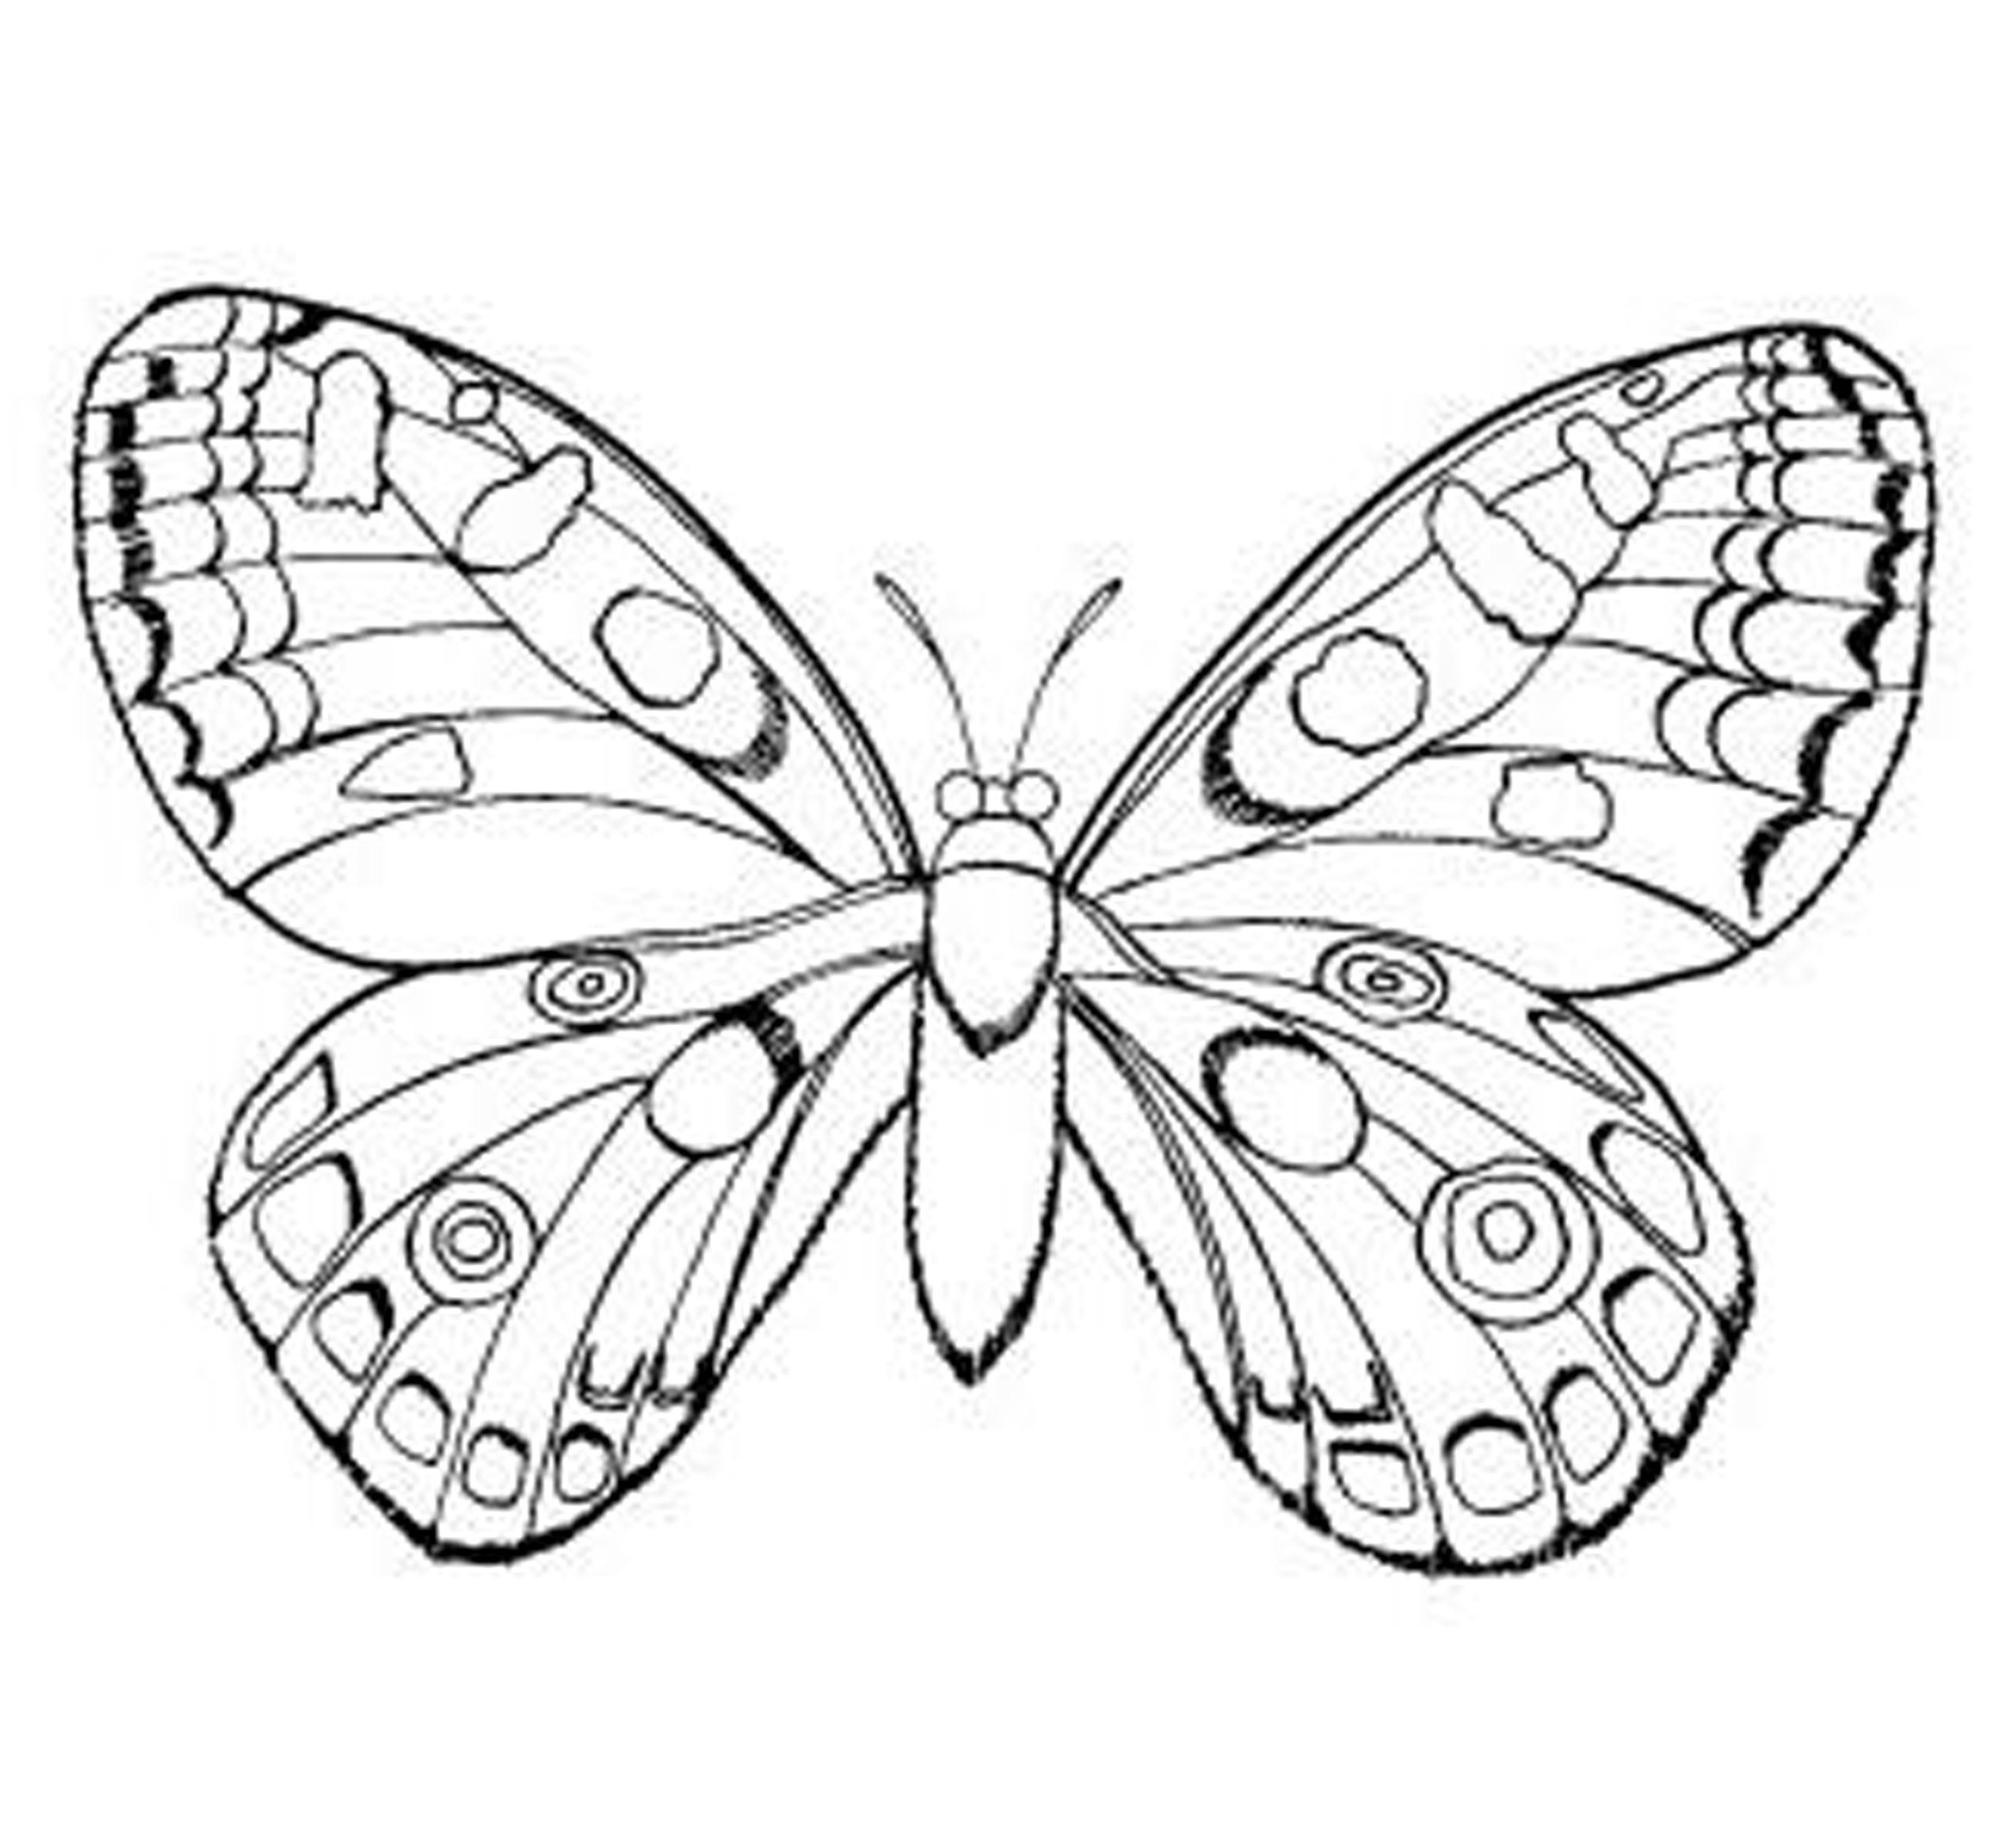 Coloring Pages For Girls At Getdrawings Free Download